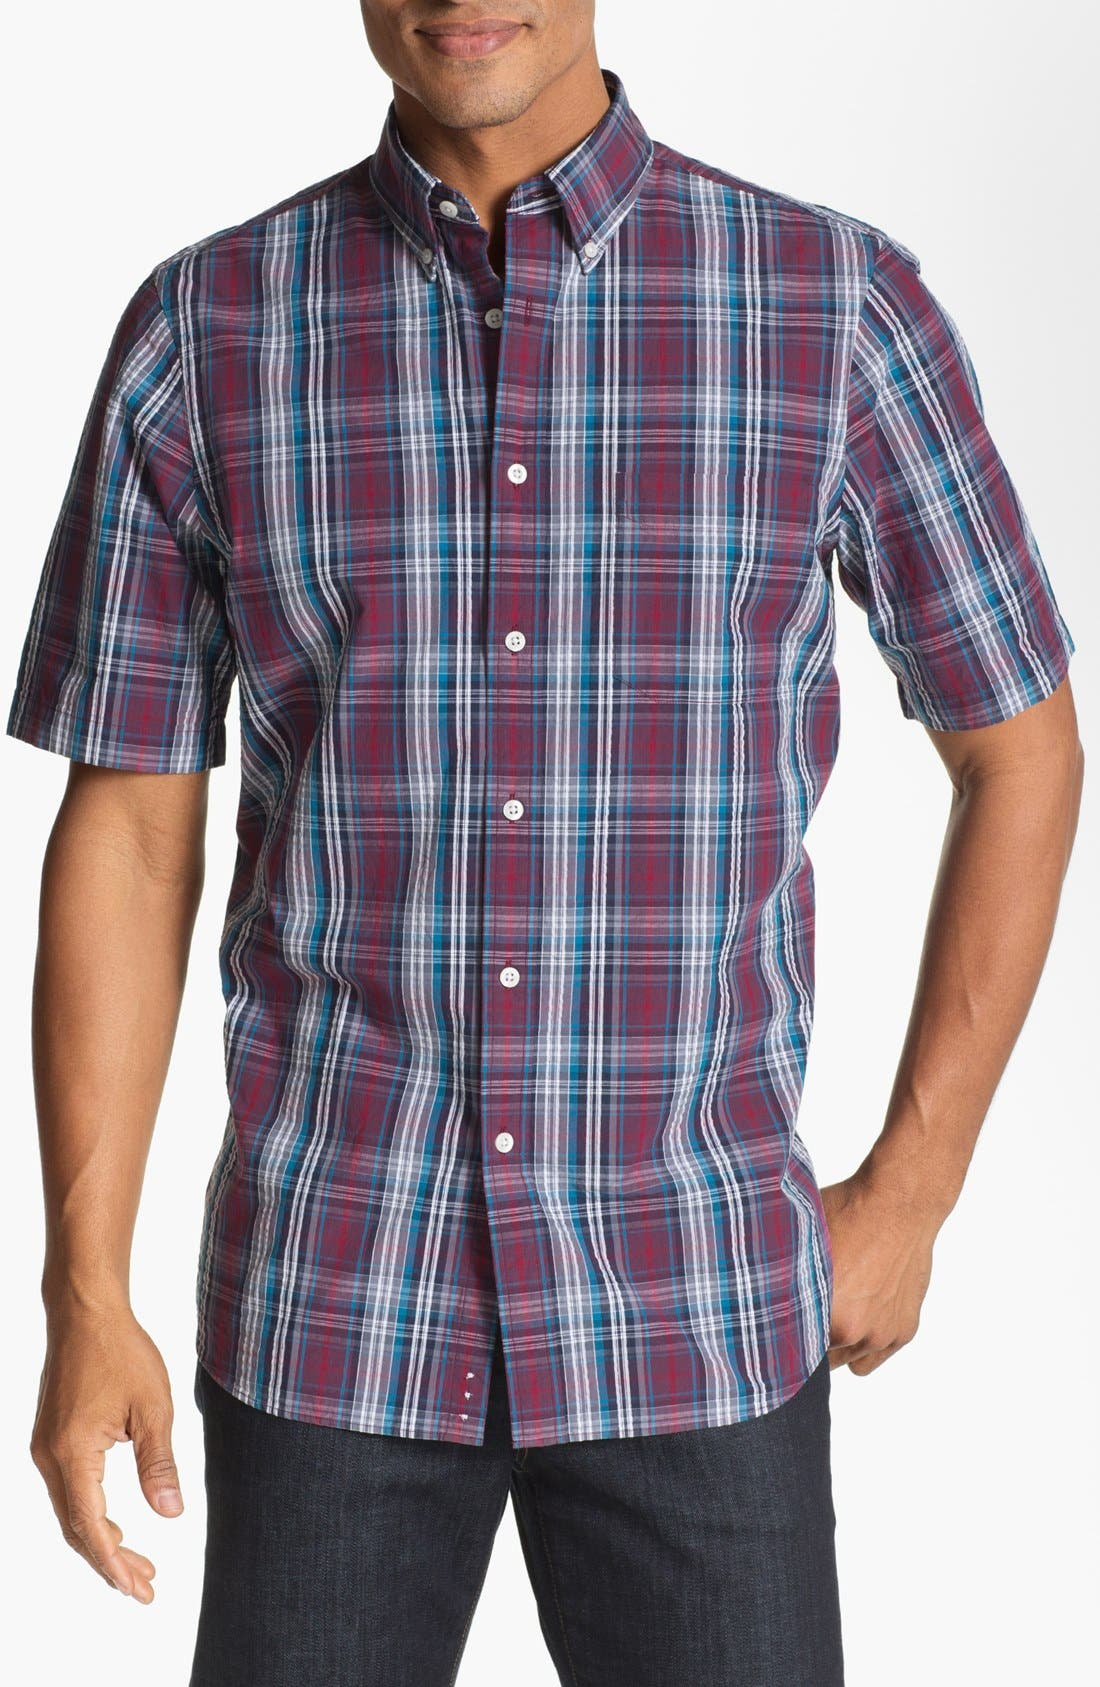 Main Image - Nordstrom Regular Fit Seersucker Sport Shirt